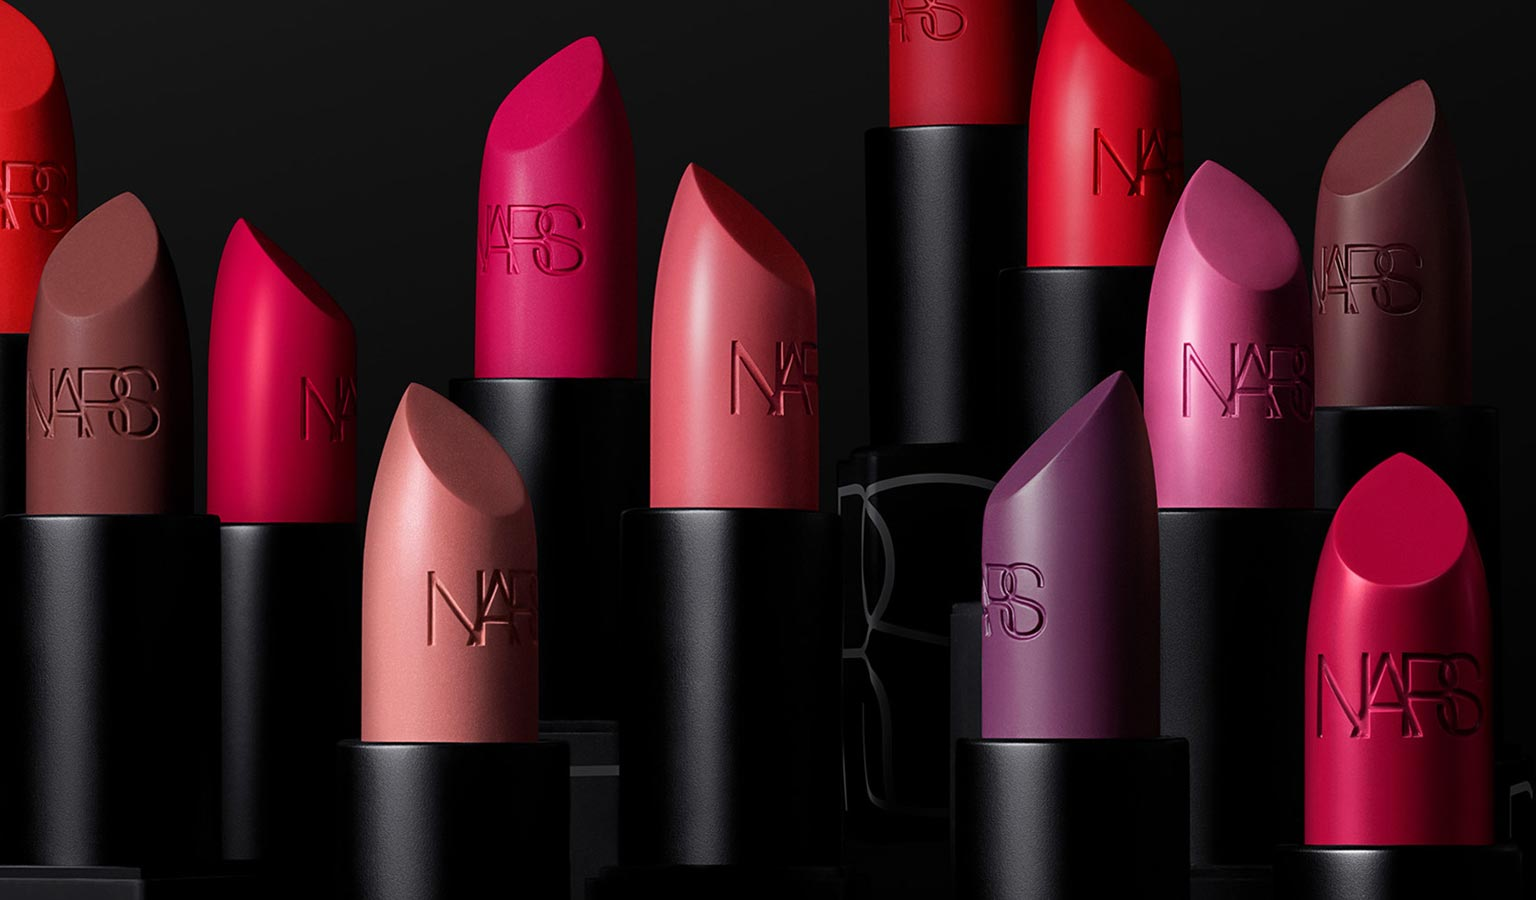 A lineup of NARS lipsticks